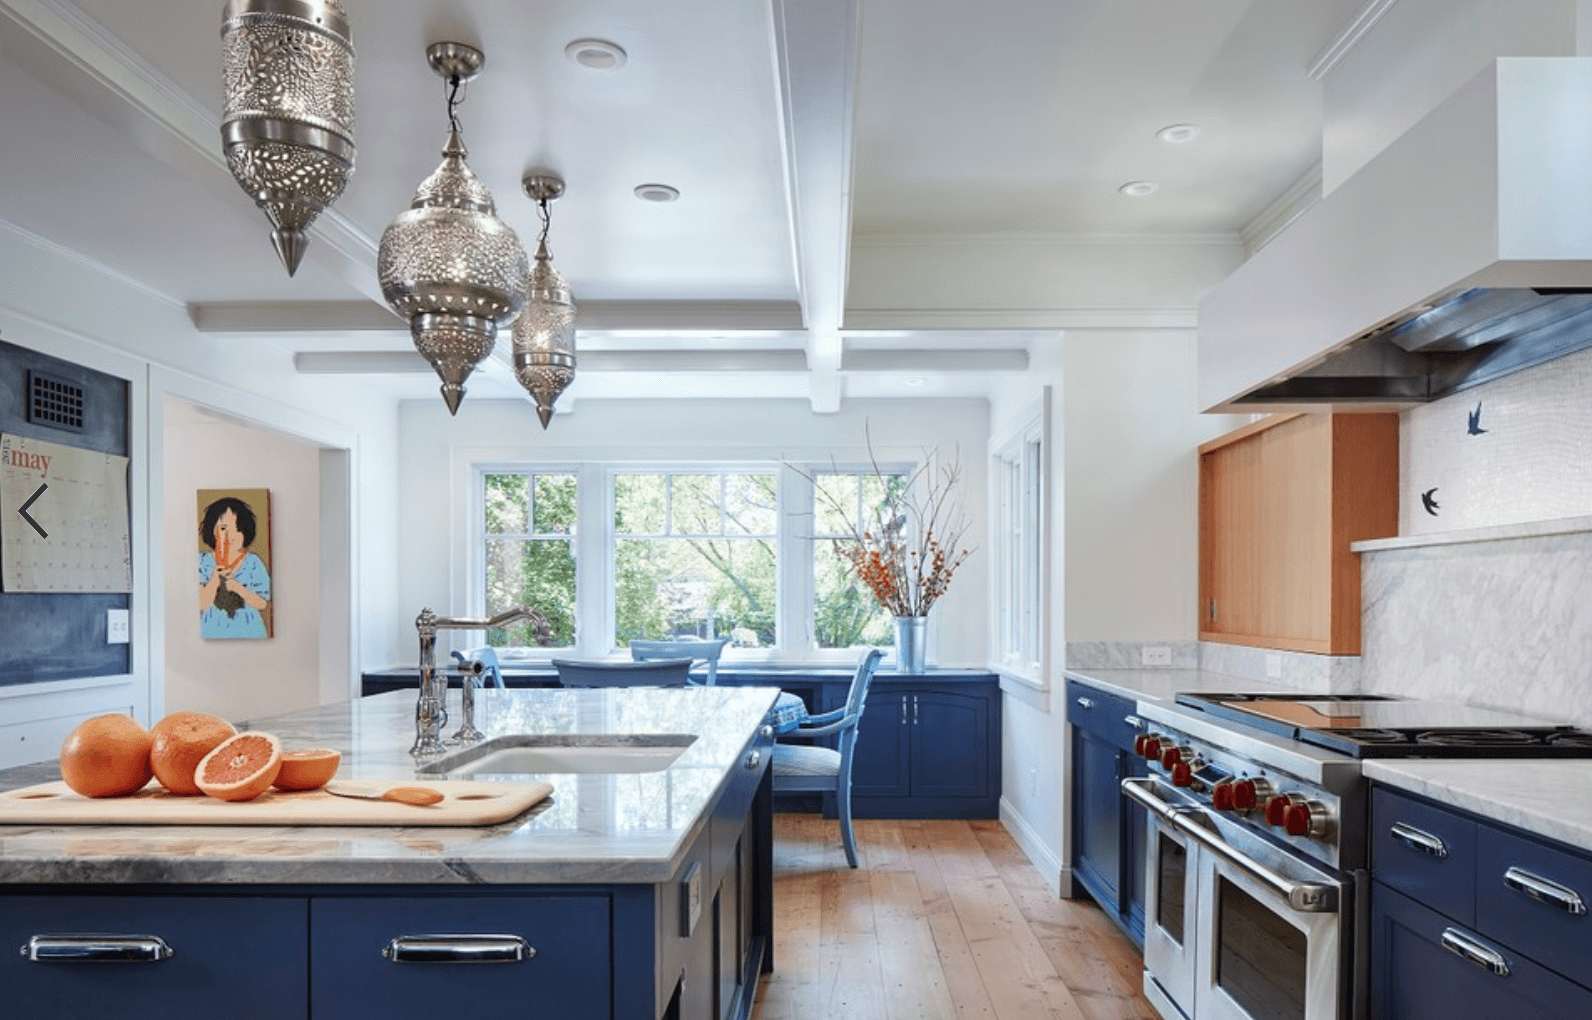 29 Creative Kitchen Color Ideas to Make Your Space Shine - http ...